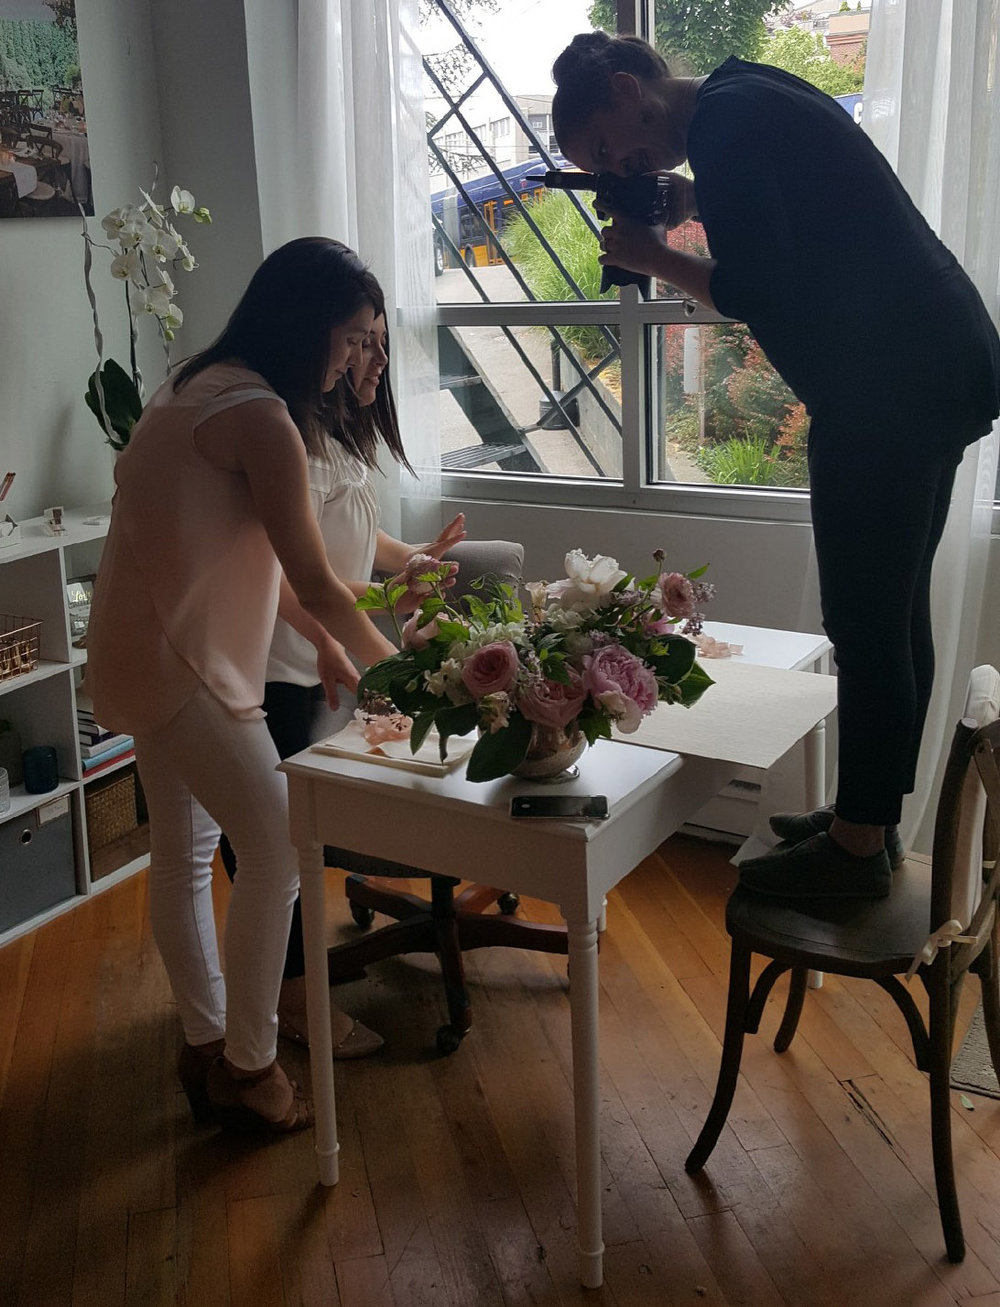 Behind the scenes of a branding shoot with seattle branding photographer Rebecca Ellison.